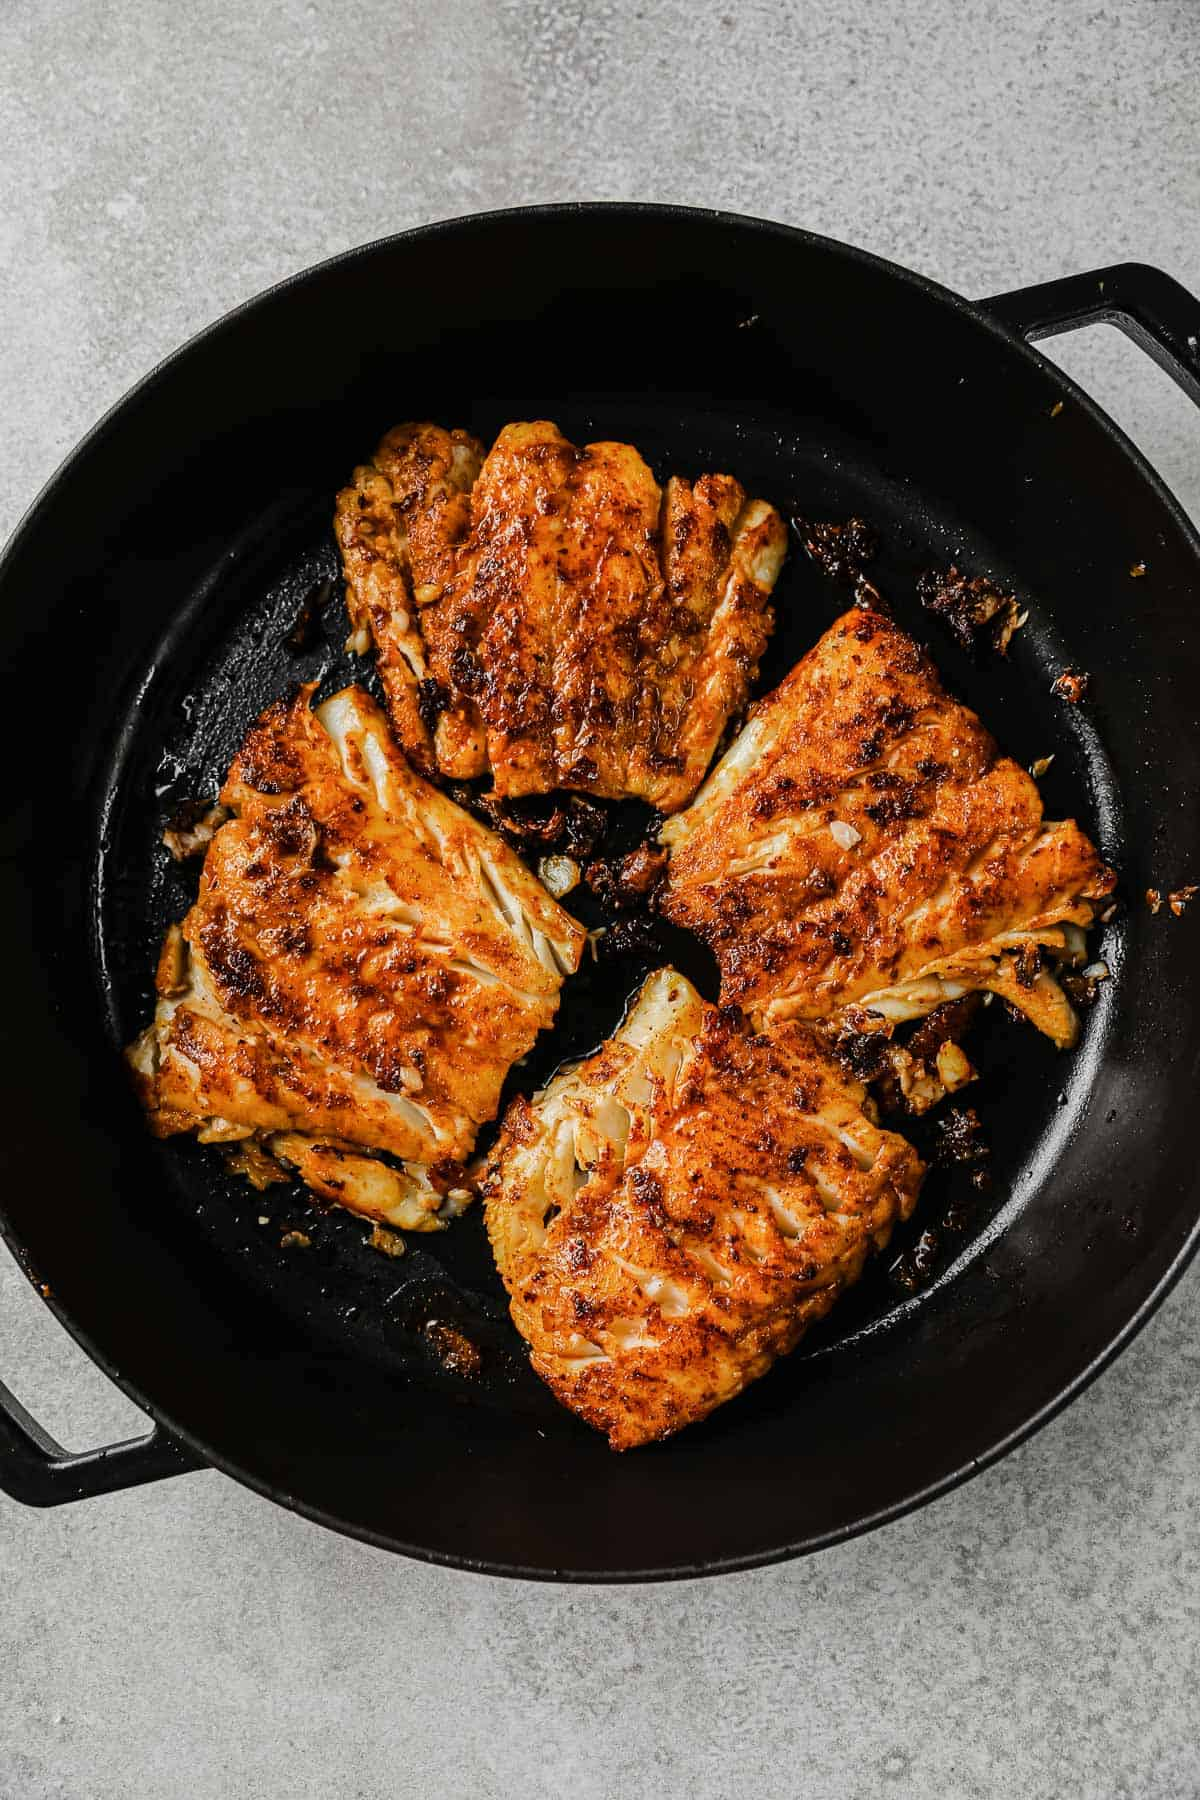 taco seasoned cod fillets being cooked in a cast iron pan